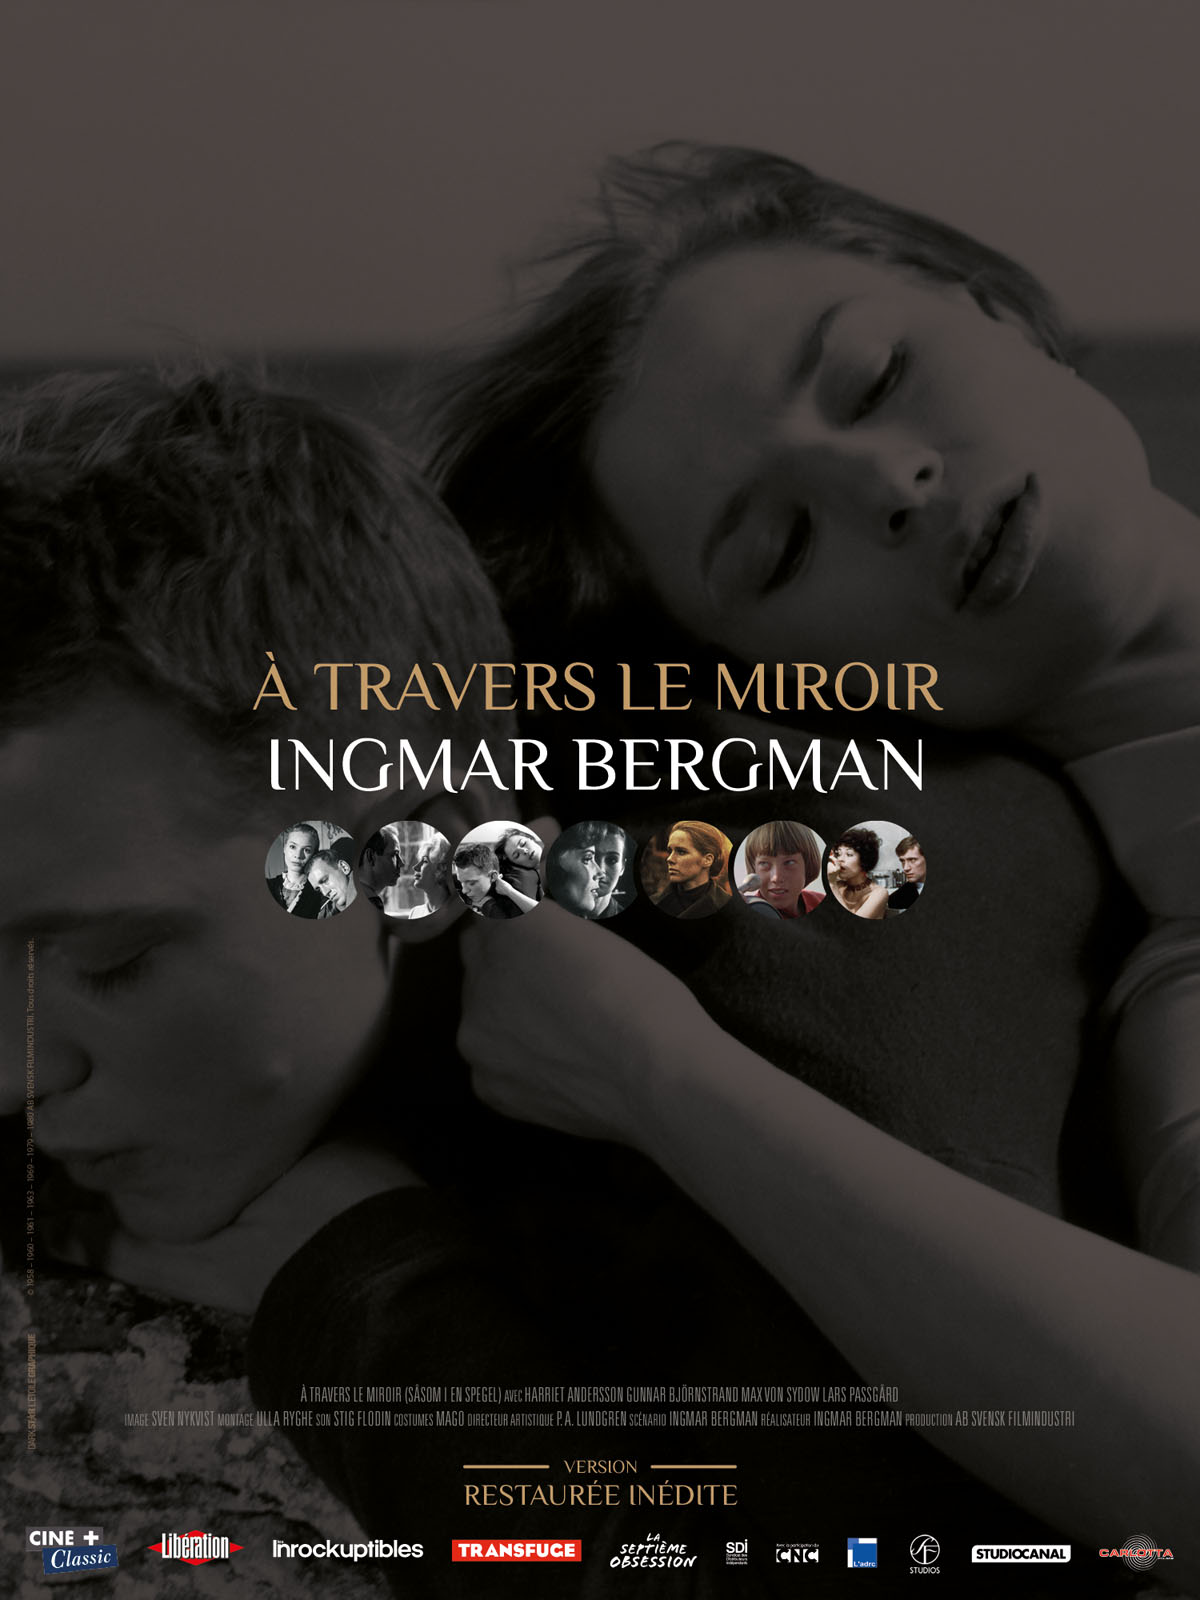 Image du film A travers le miroir